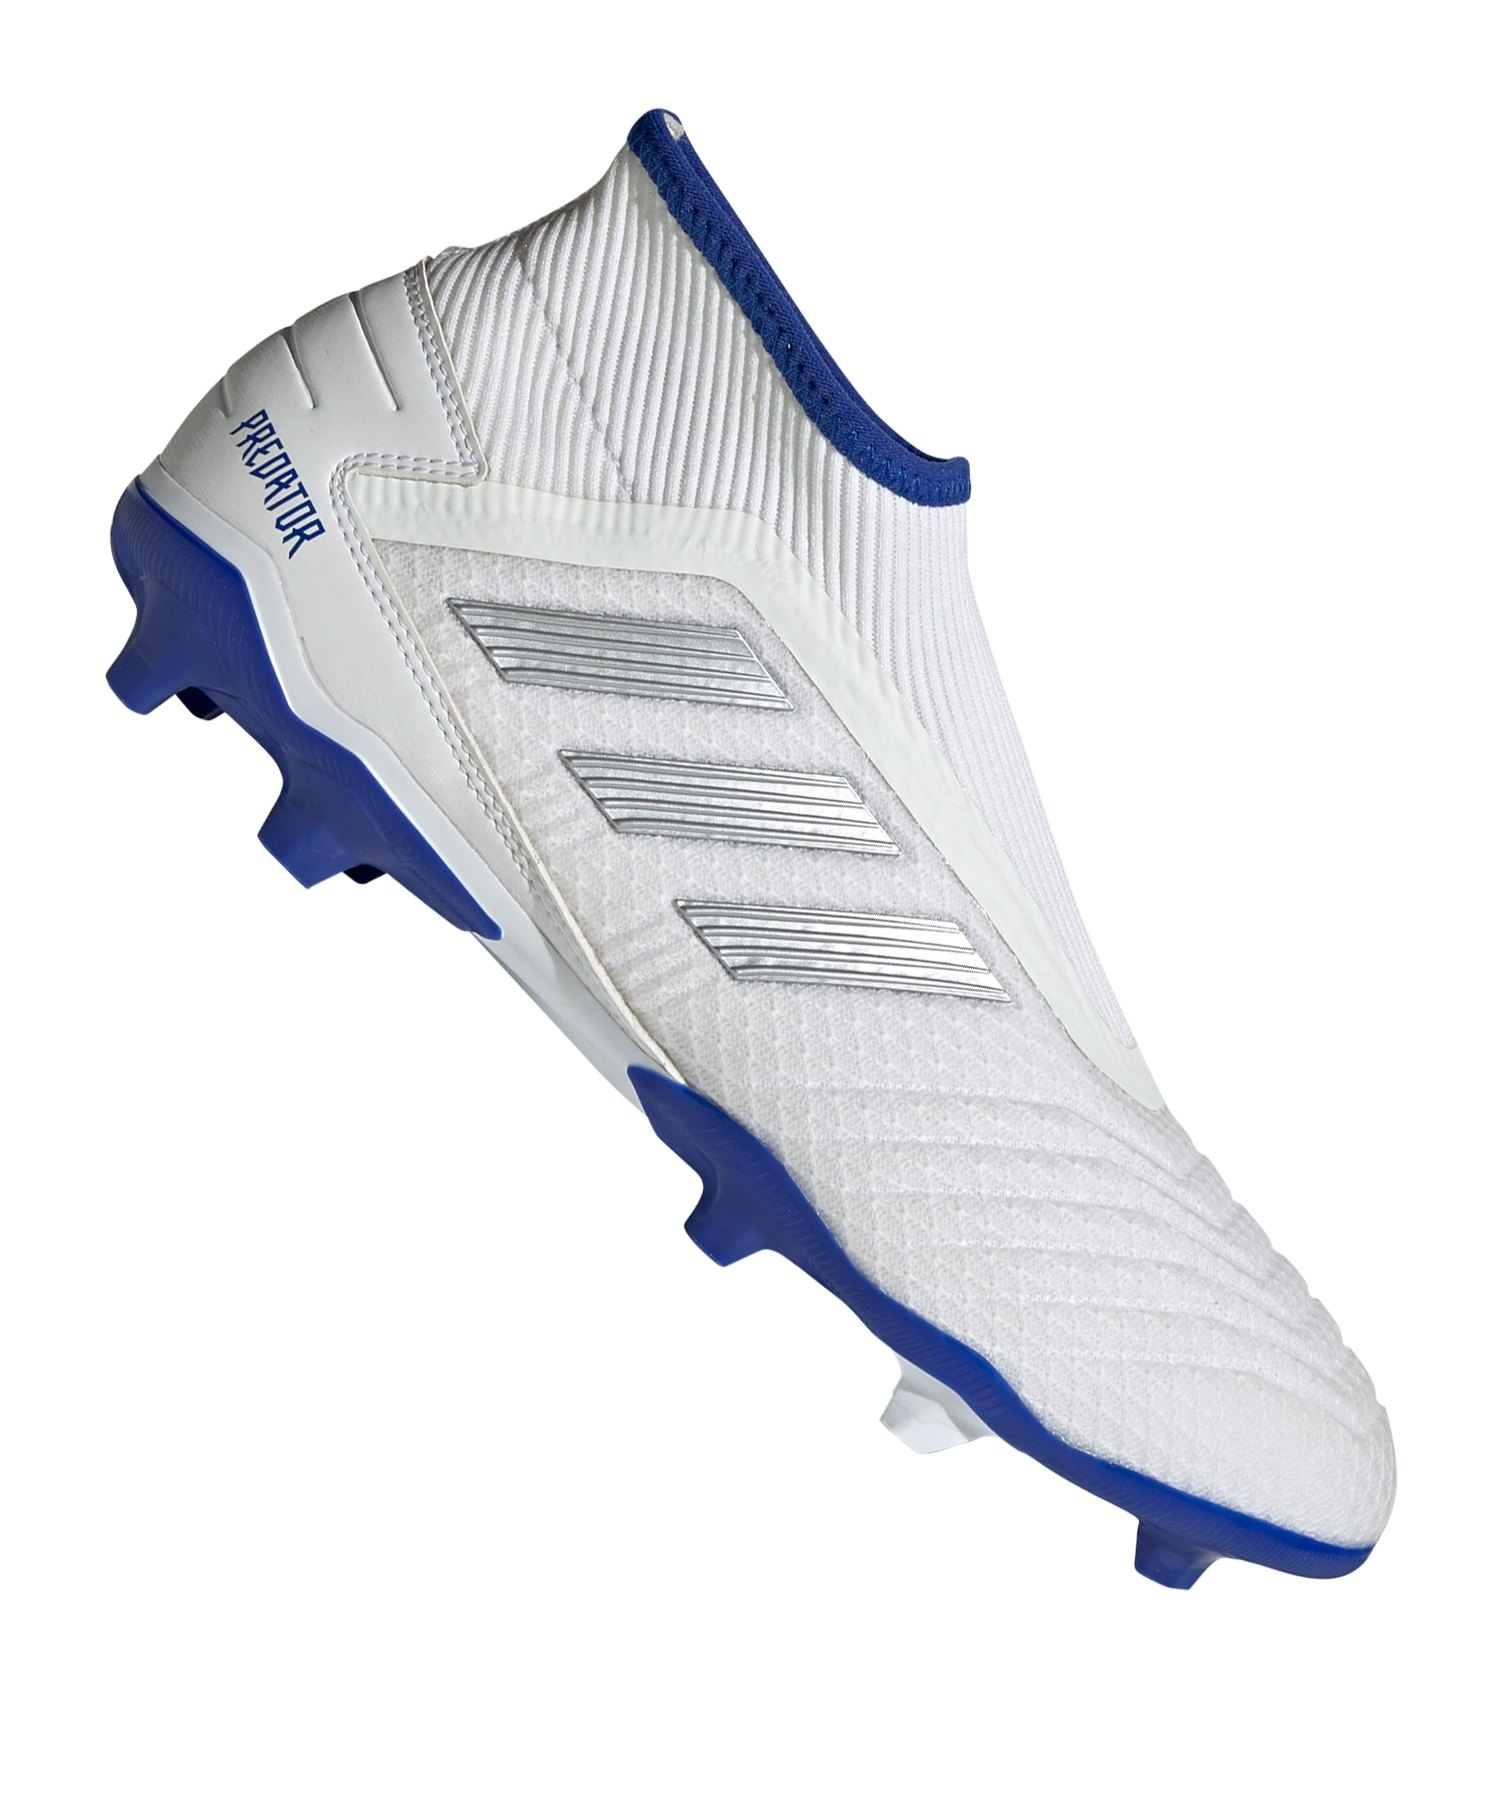 newest collection 34889 f5b99 adidas Predator 19.3 FG Weiss Silber - weiss